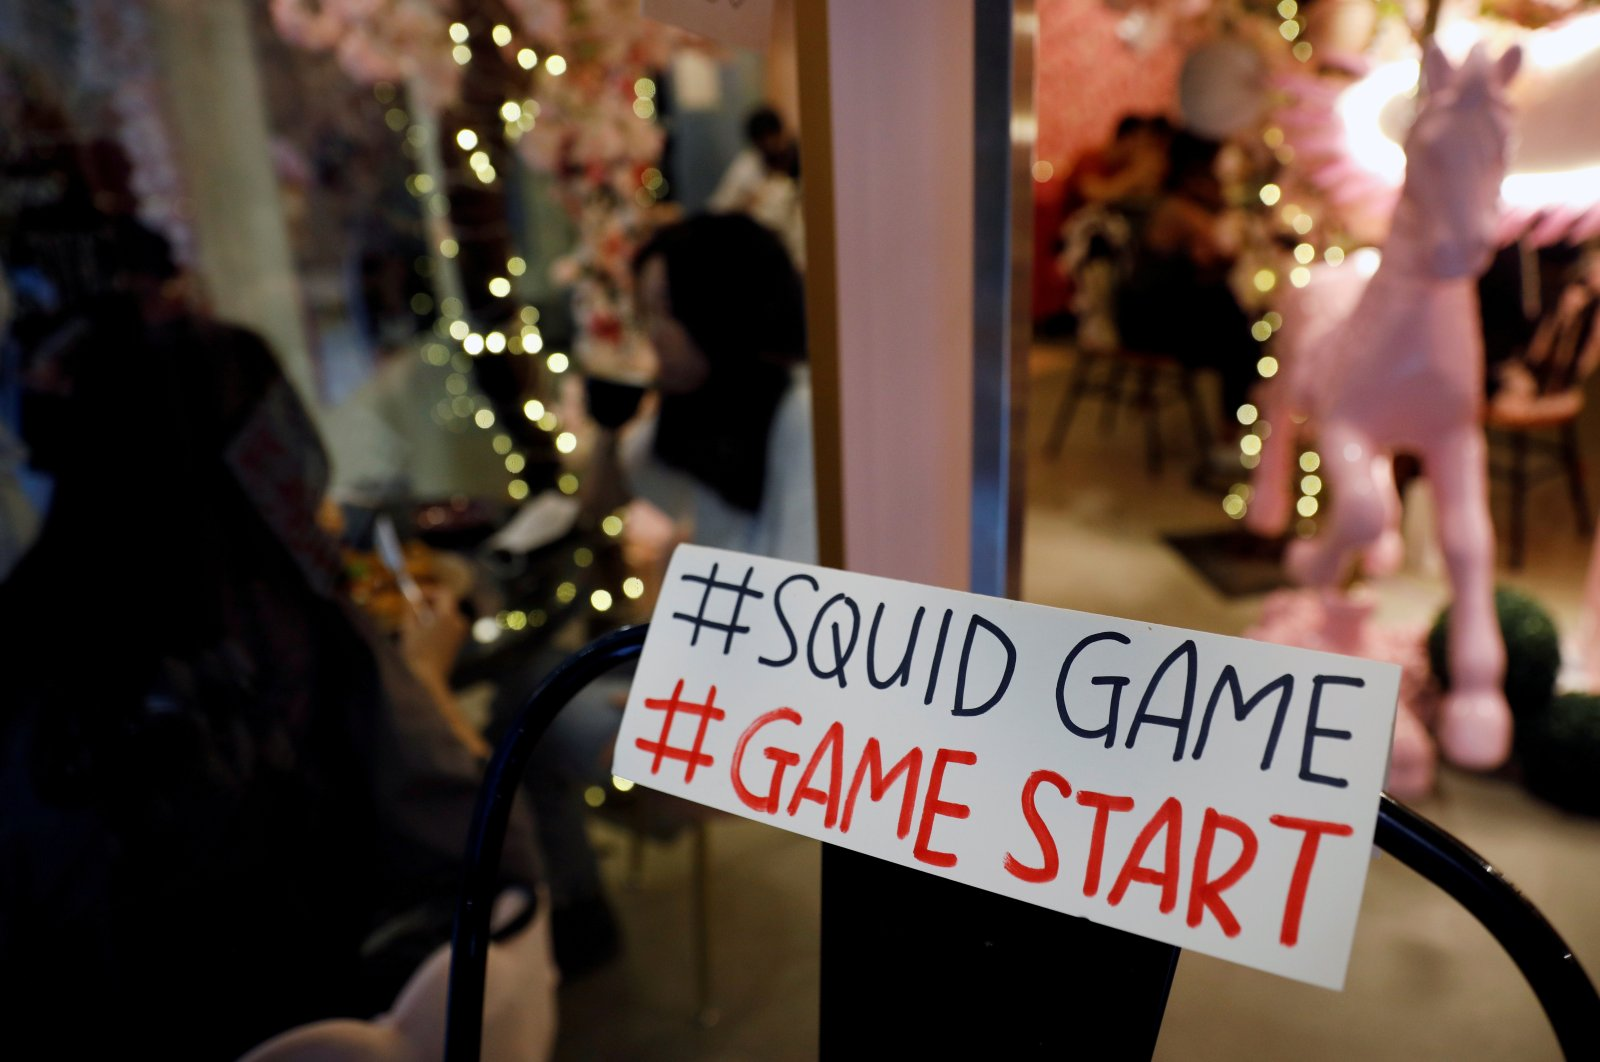 """A sign referring to the """"honeycomb challenge"""" featured in Netflix's new hit series """"Squid Game"""" is seen at Brown Butter Cafe in Singapore, Oct. 1, 2021. (Reuters Photo)"""